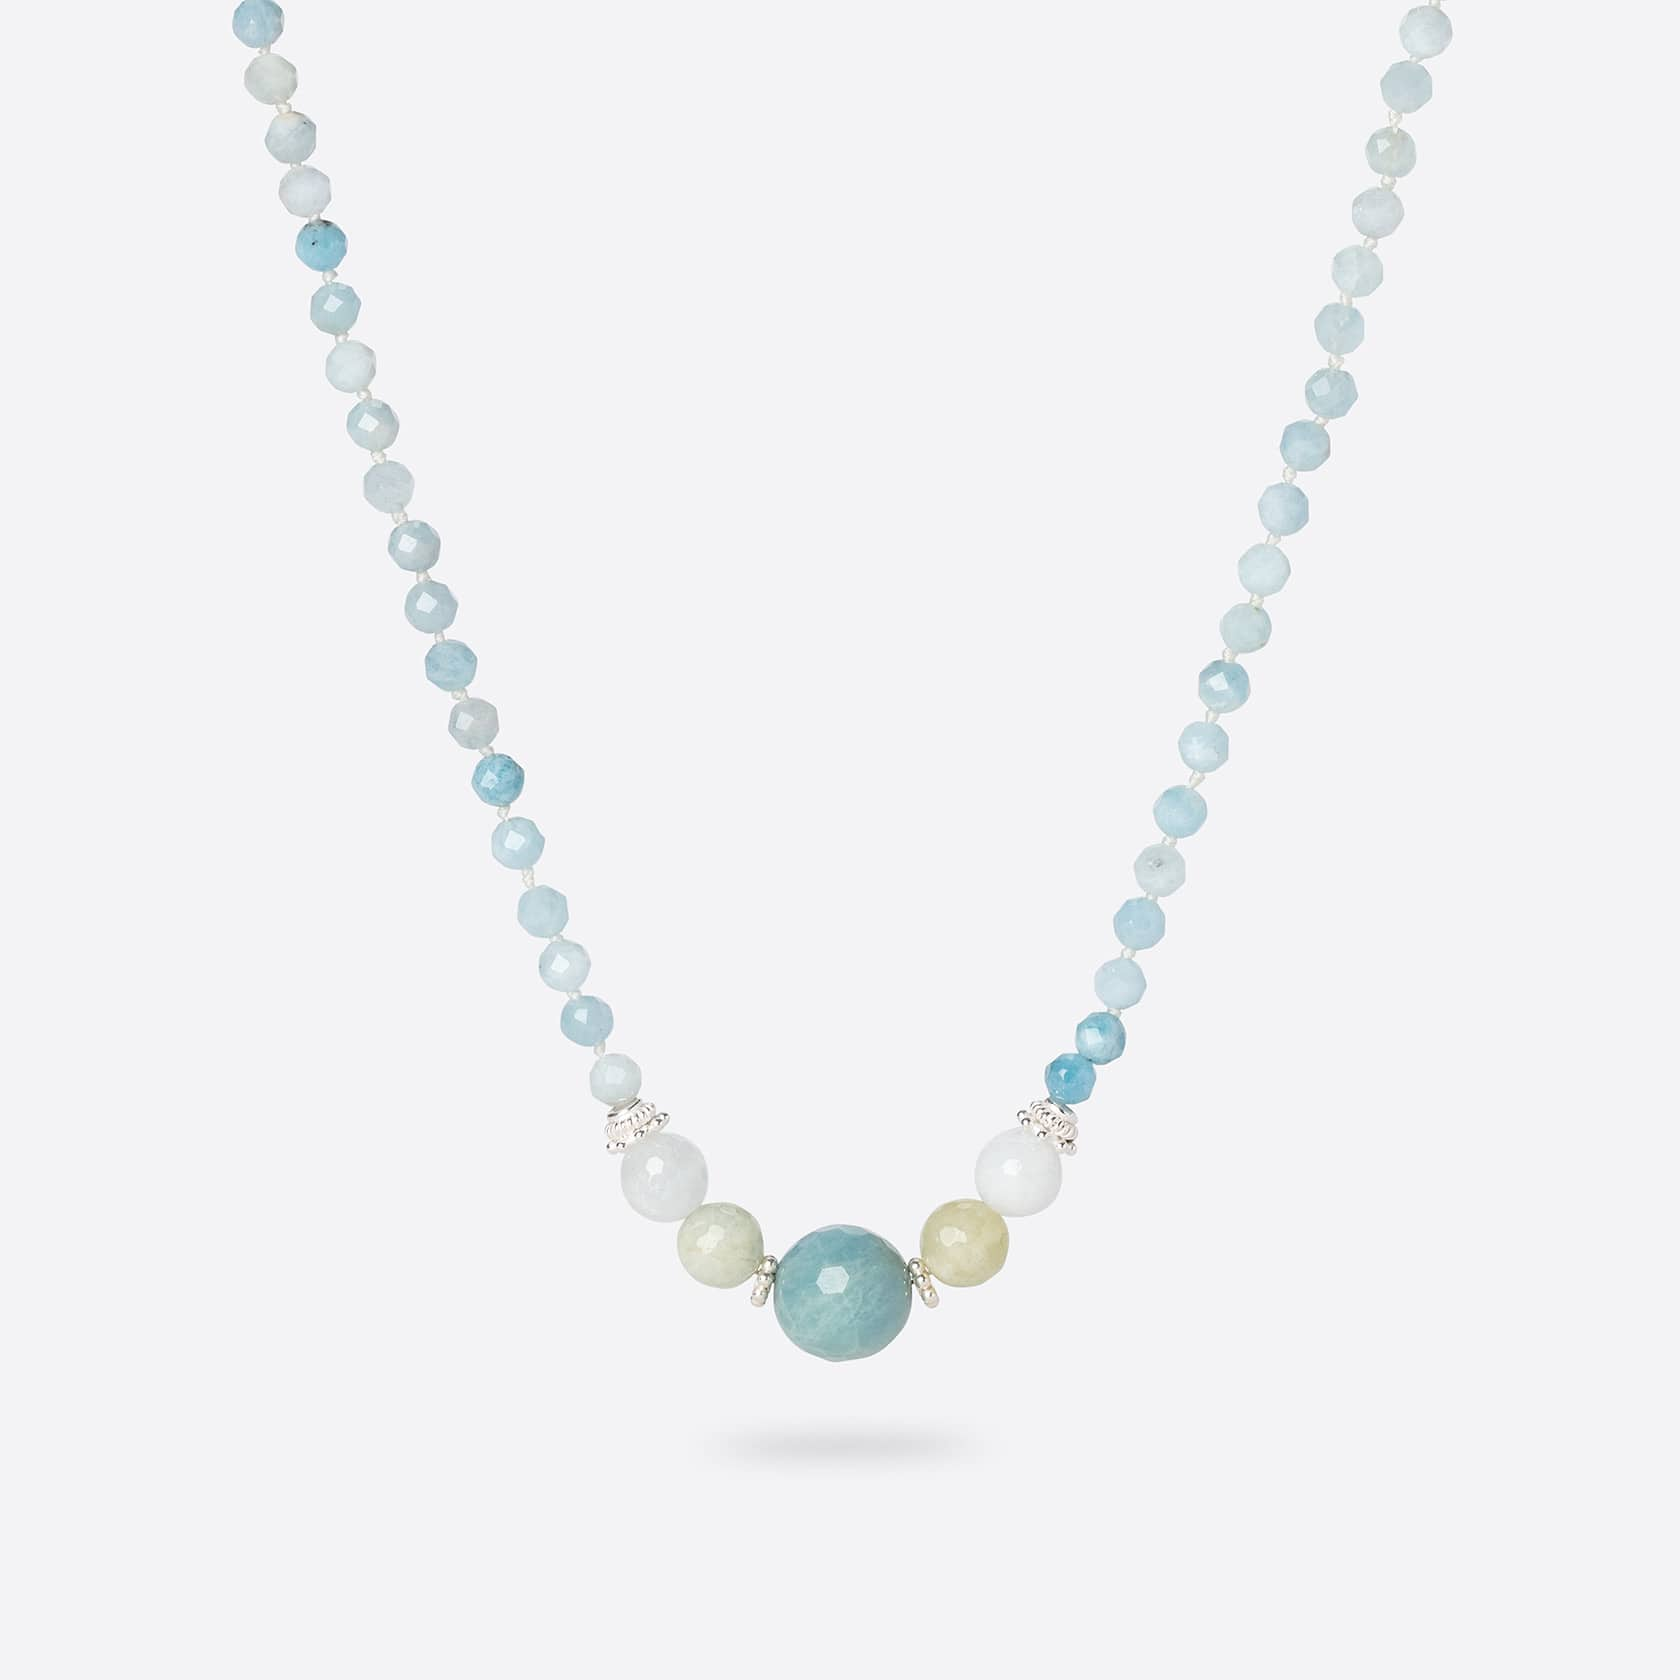 Kara aquamarine short necklace